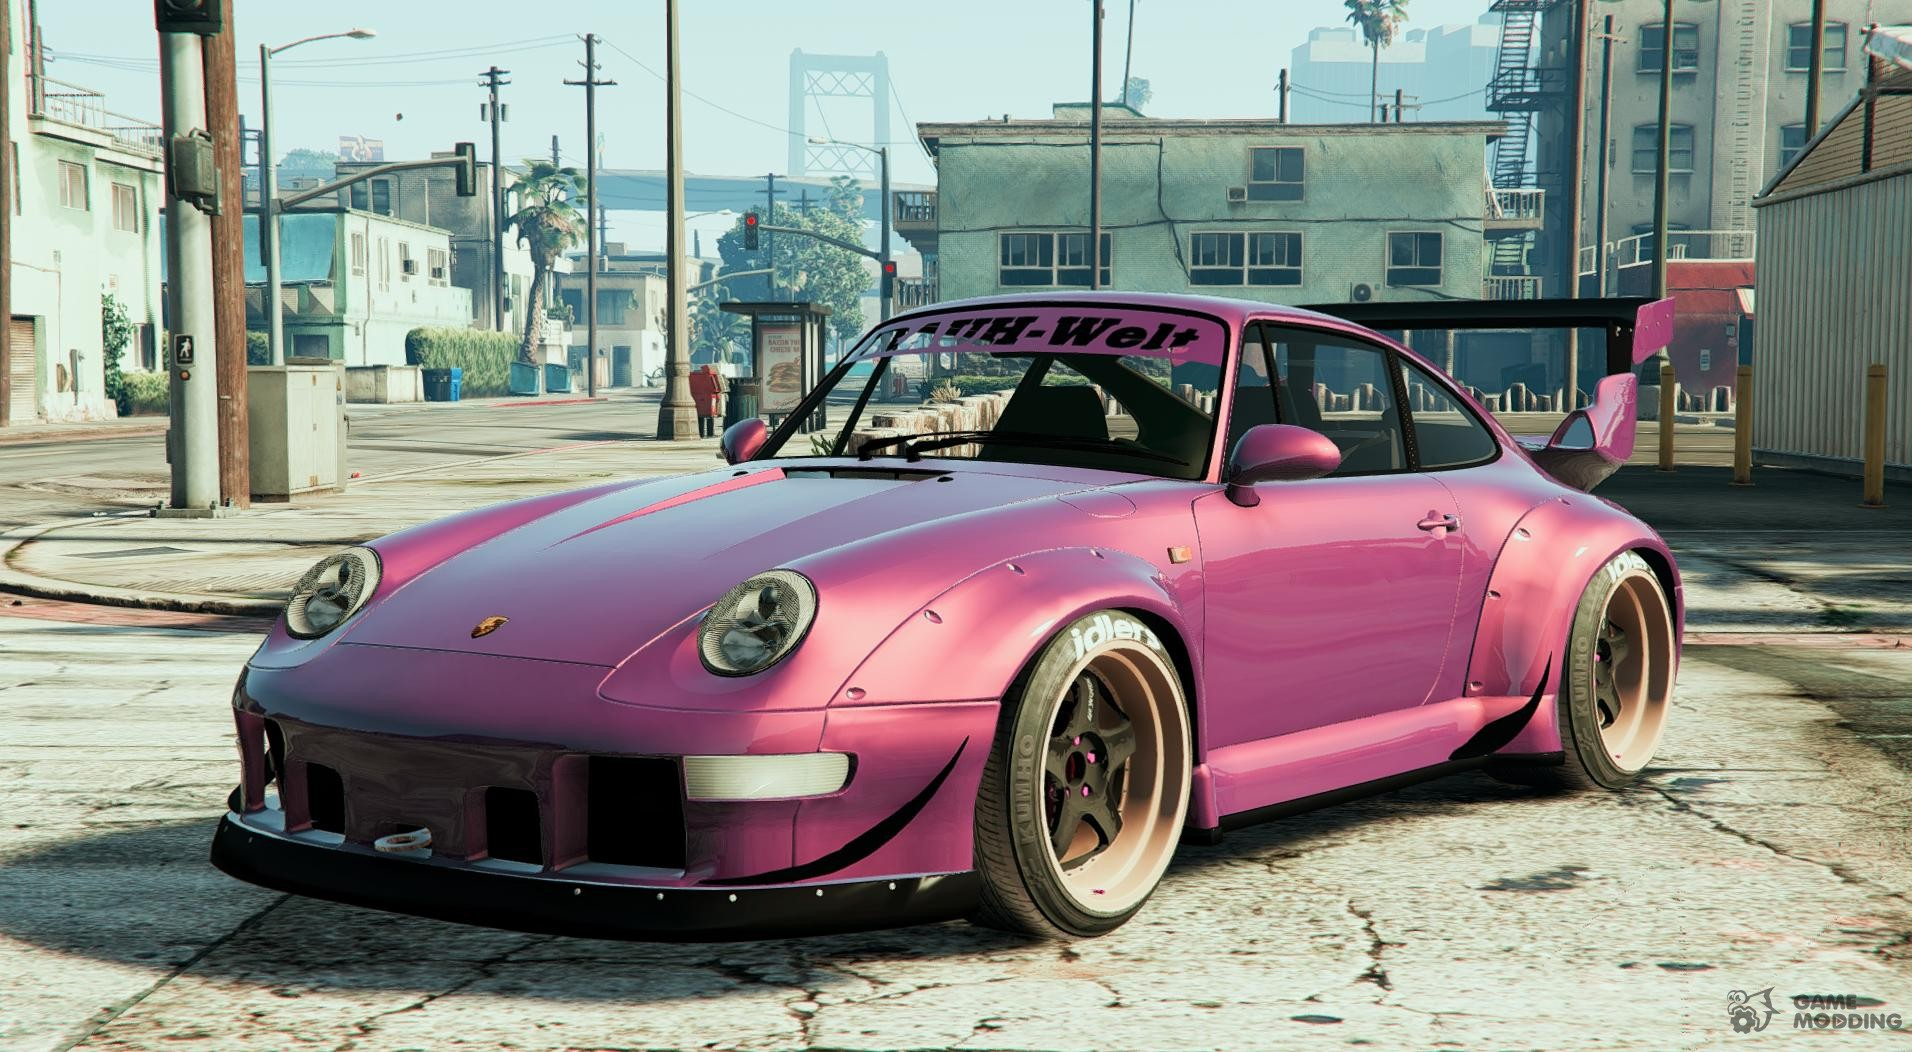 1995 porsche 911 gt2 993 rauh welt begriff rwb for gta 5. Black Bedroom Furniture Sets. Home Design Ideas